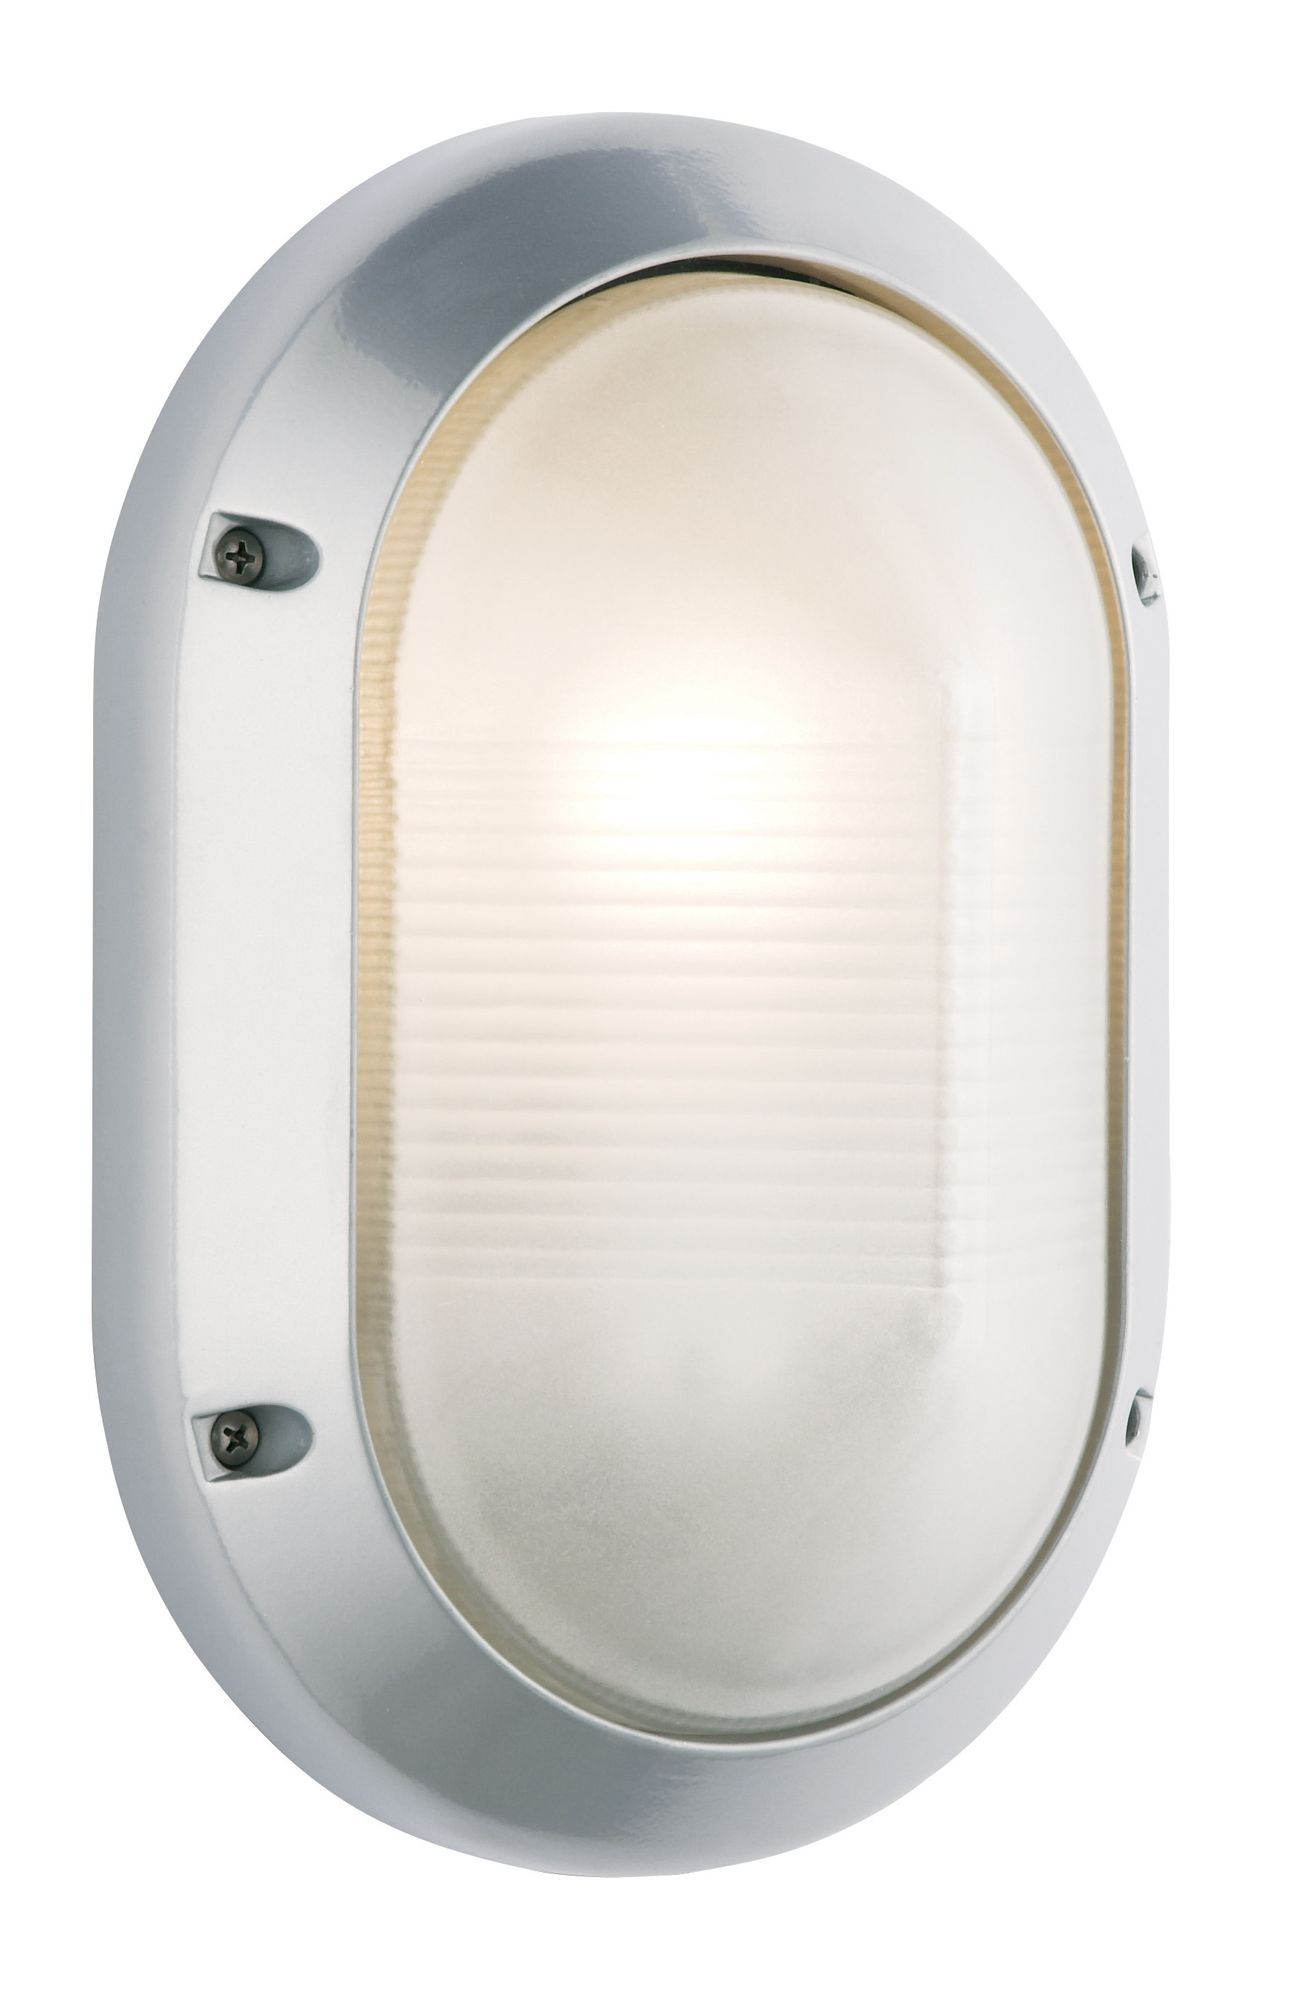 Lights by bq ginalla exterior wall bulkhead light departments lights by bq ginalla exterior wall bulkhead light departments diy at bq mozeypictures Images